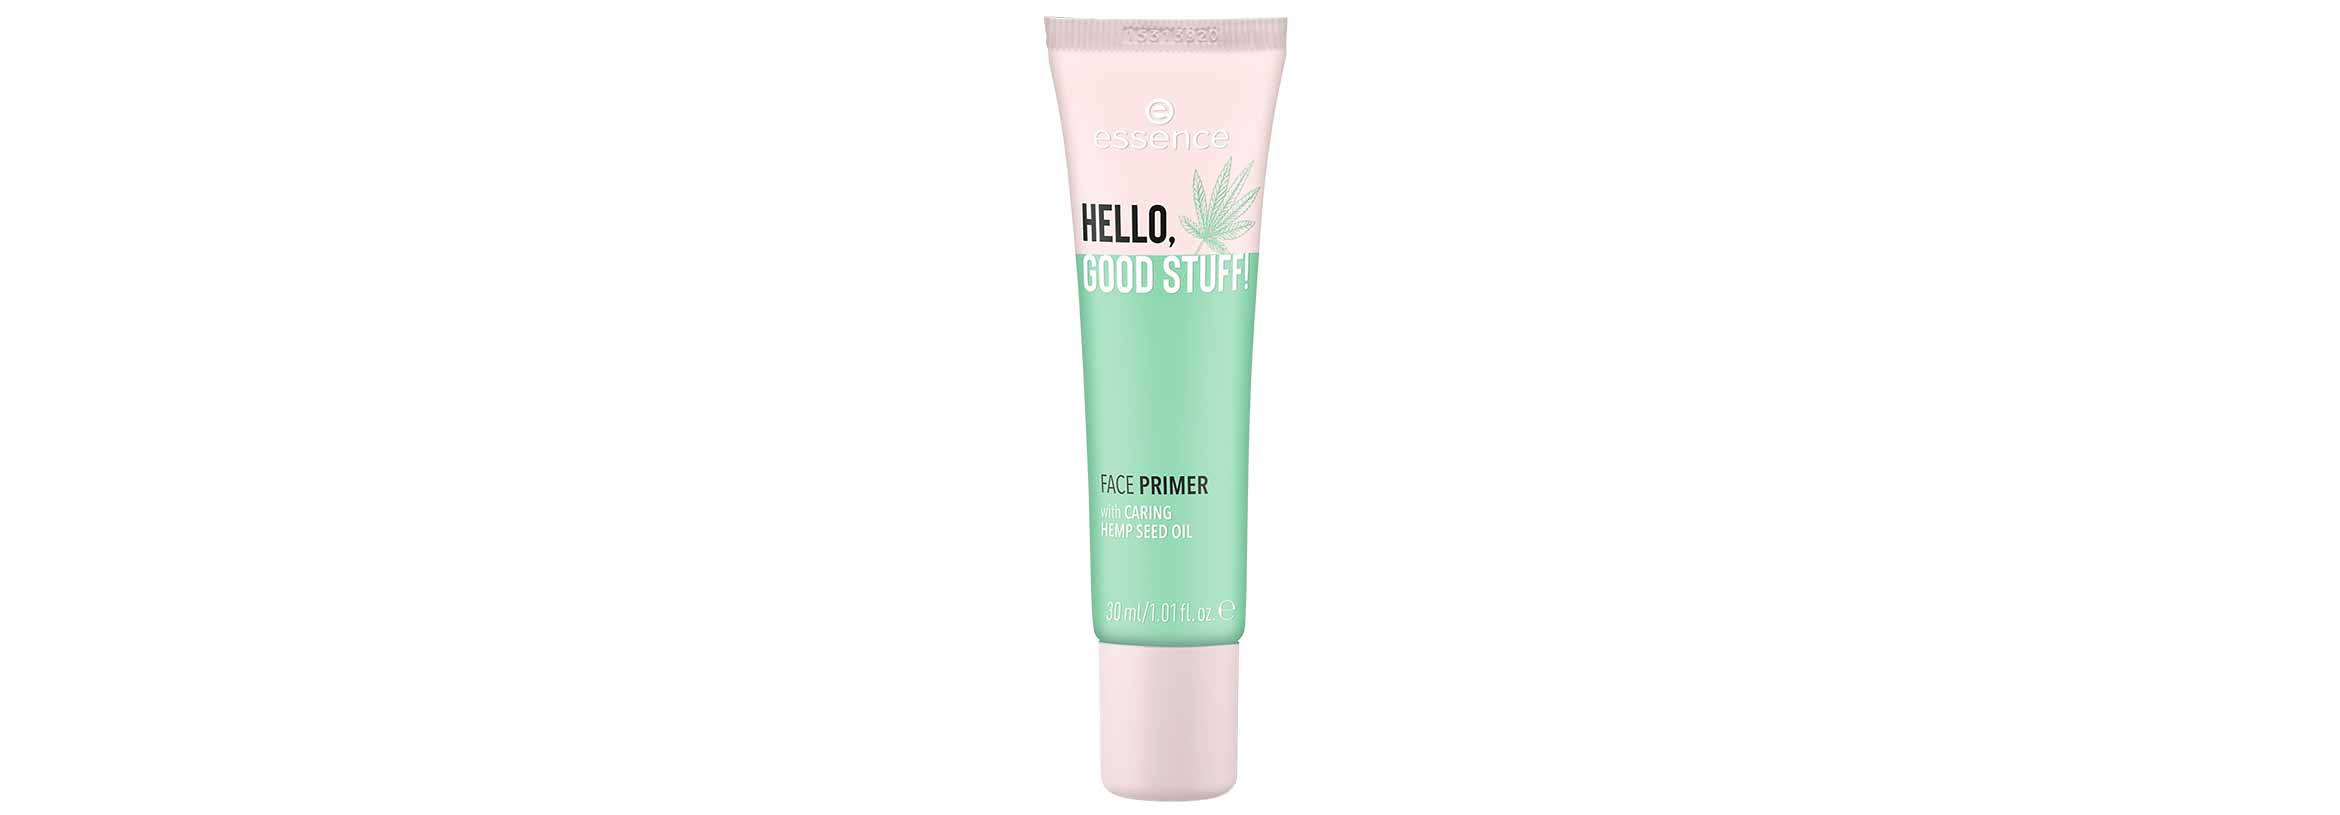 essence hello, good stuff face primer